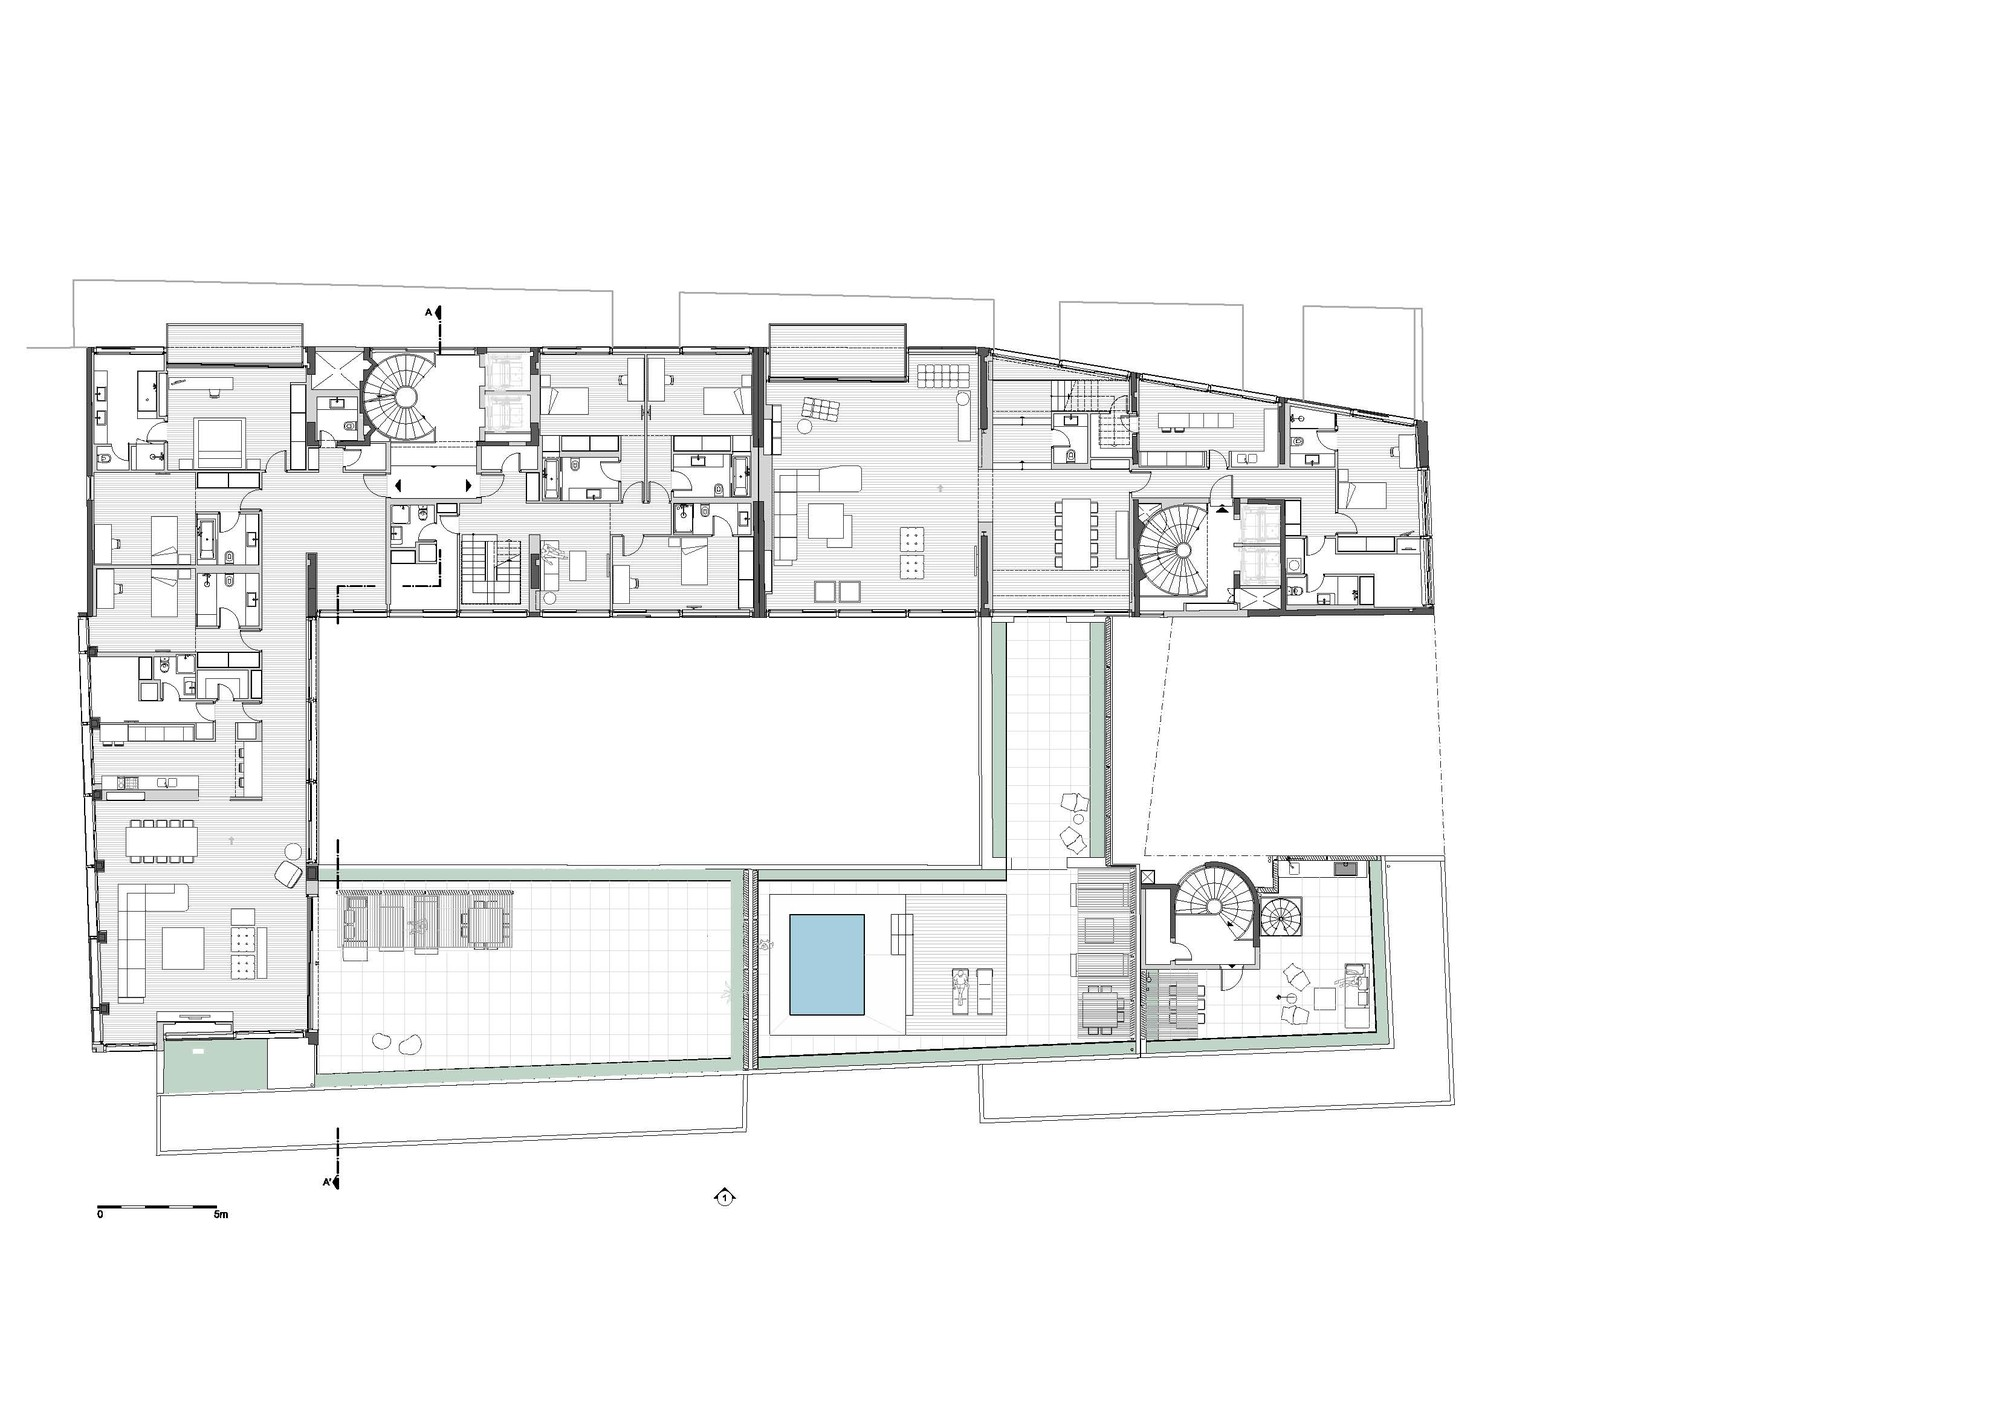 Gallery of Conversion of Doxiadis Office Building ATI to Apartment